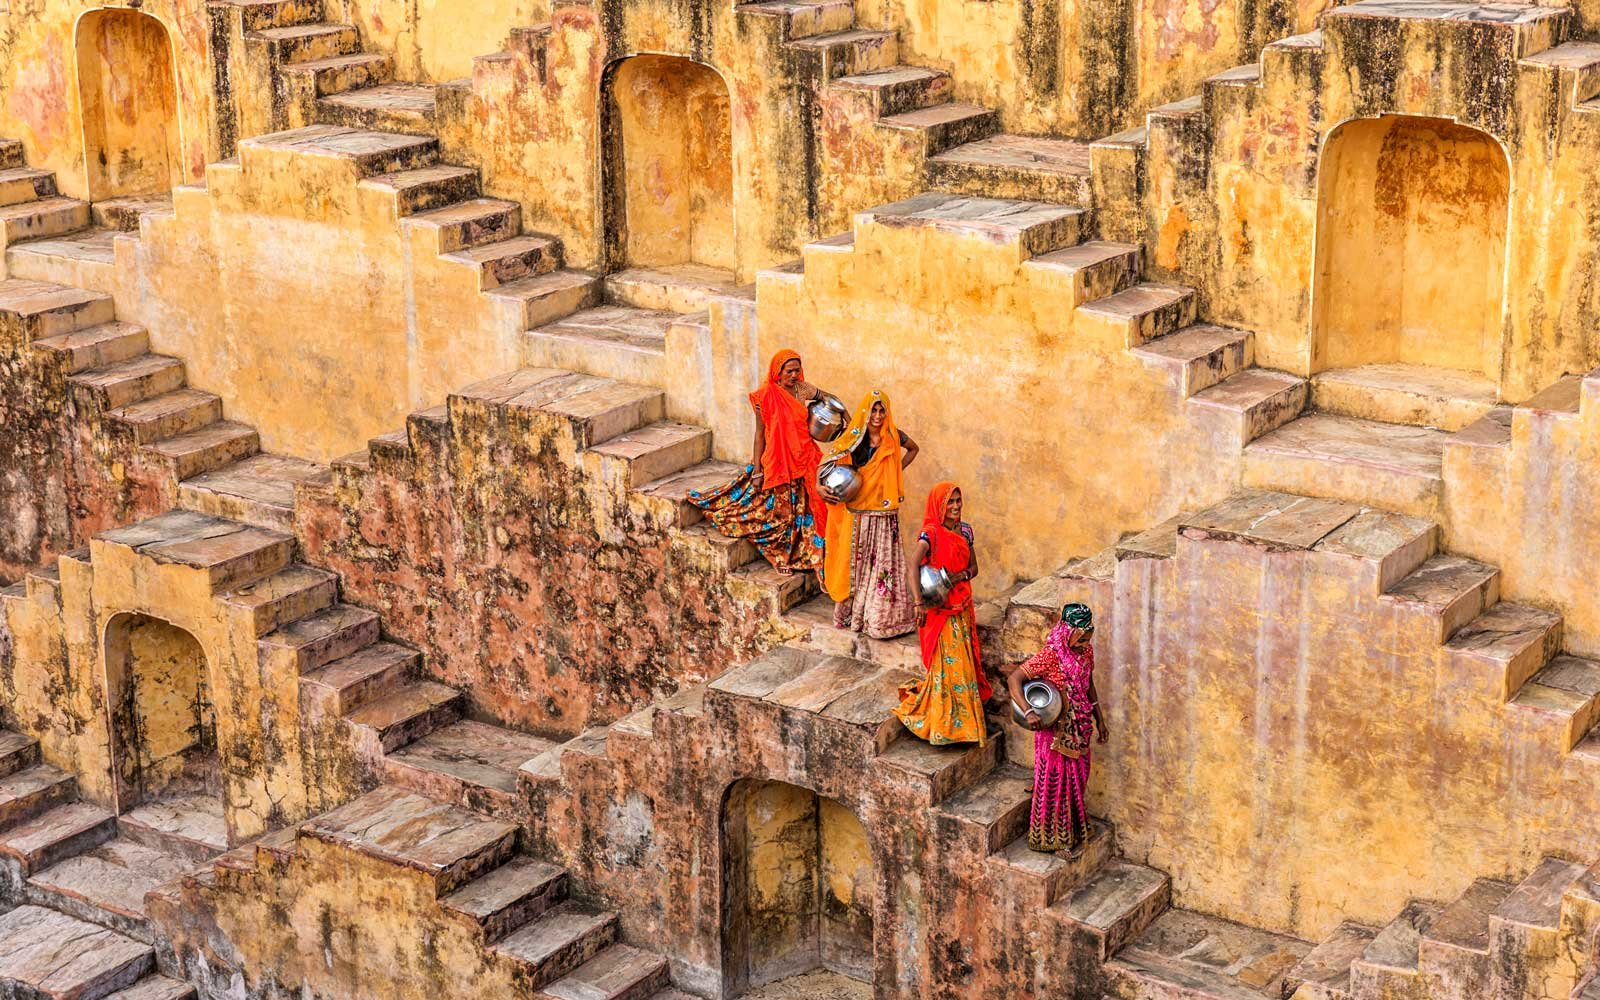 Indian women carrying water from stepwell near Jaipur, India